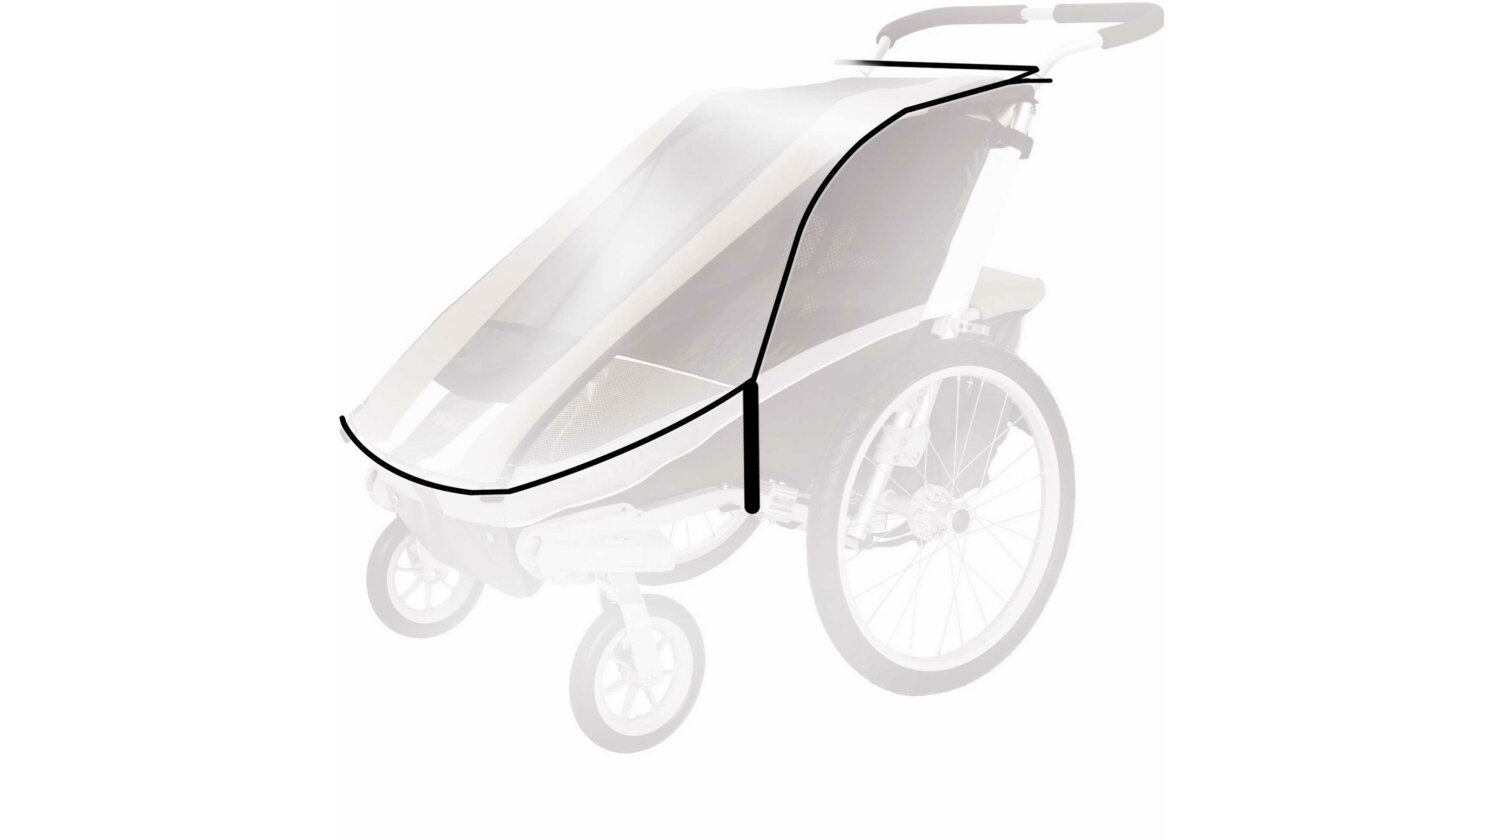 Thule Chariot Regenverdeck f�r Chinook 2